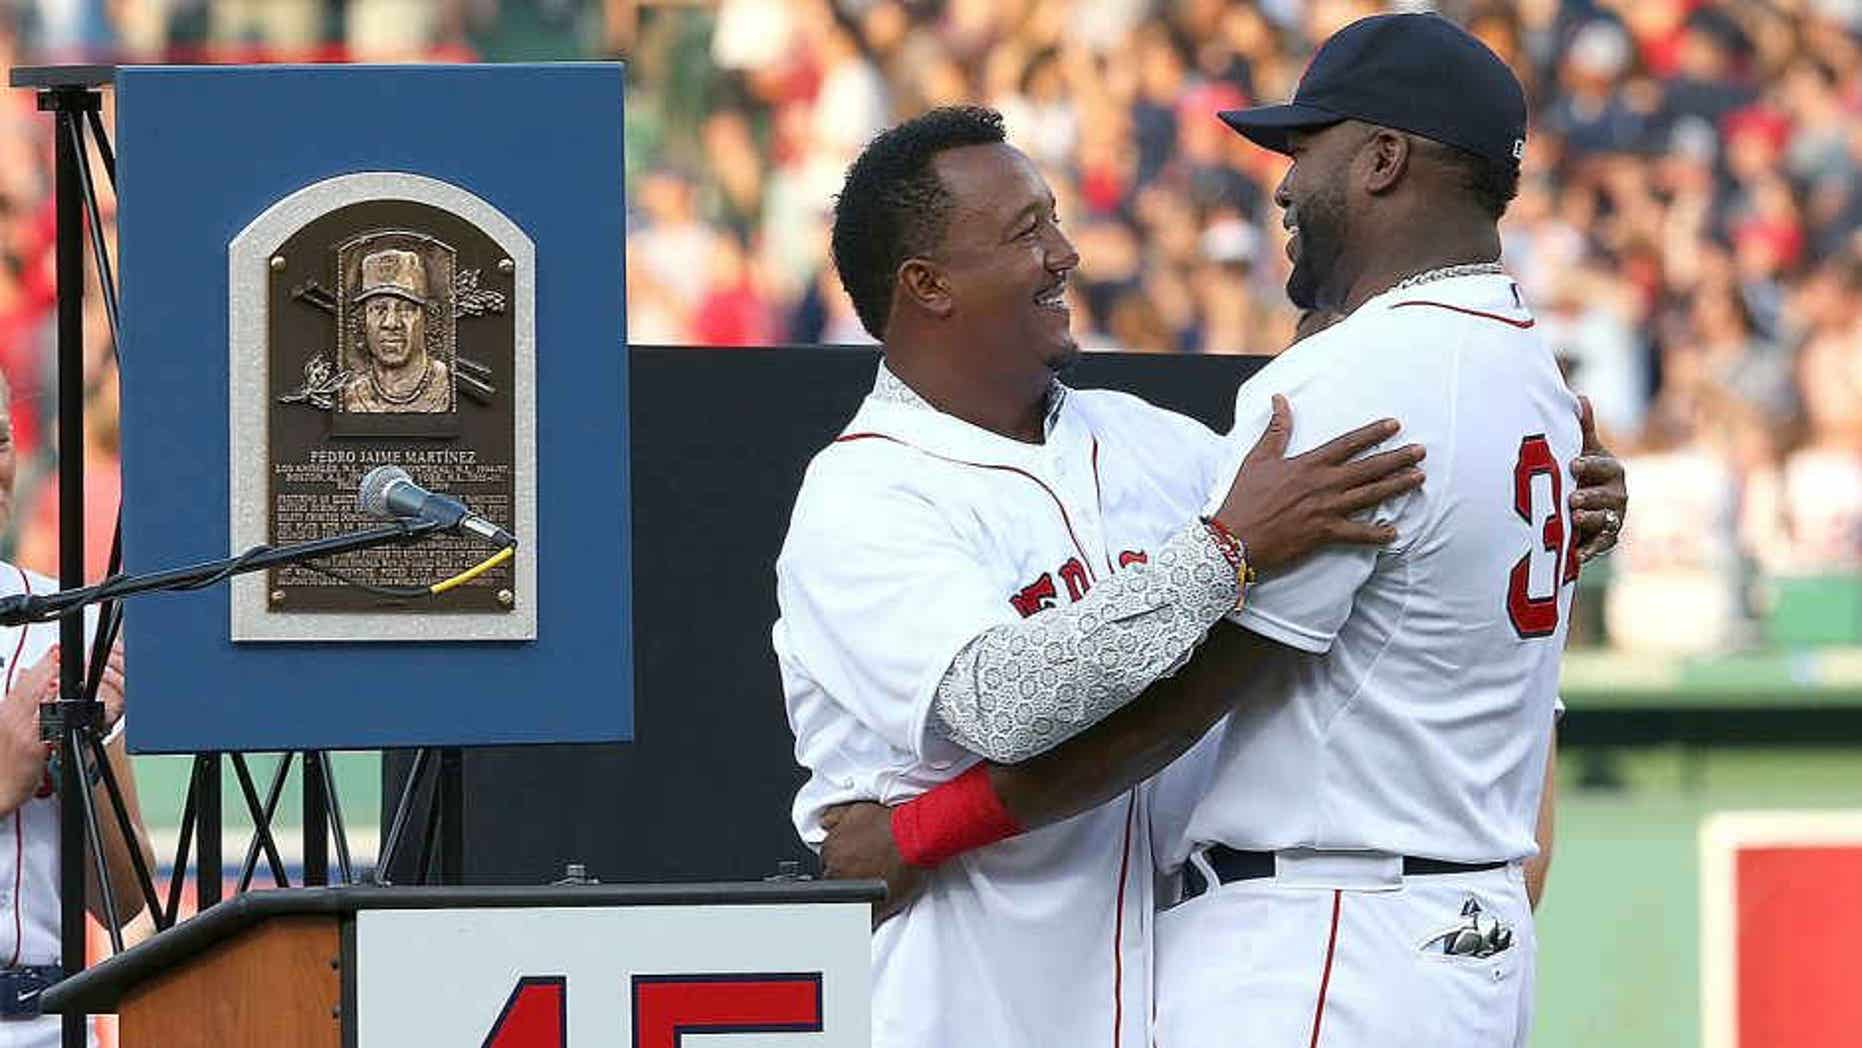 BOSTON, MA - JULY 28: David Ortiz #34 of the Boston Red Sox hugs Pedro Martinez, a former member of the Boston Red Sox, during a ceremony to retire Martinez's number 45 before a game with the Chicago White Sox at Fenway Park on July 28, 2015 in Boston, Massachusetts. (Photo by Jim Rogash/Getty Images)